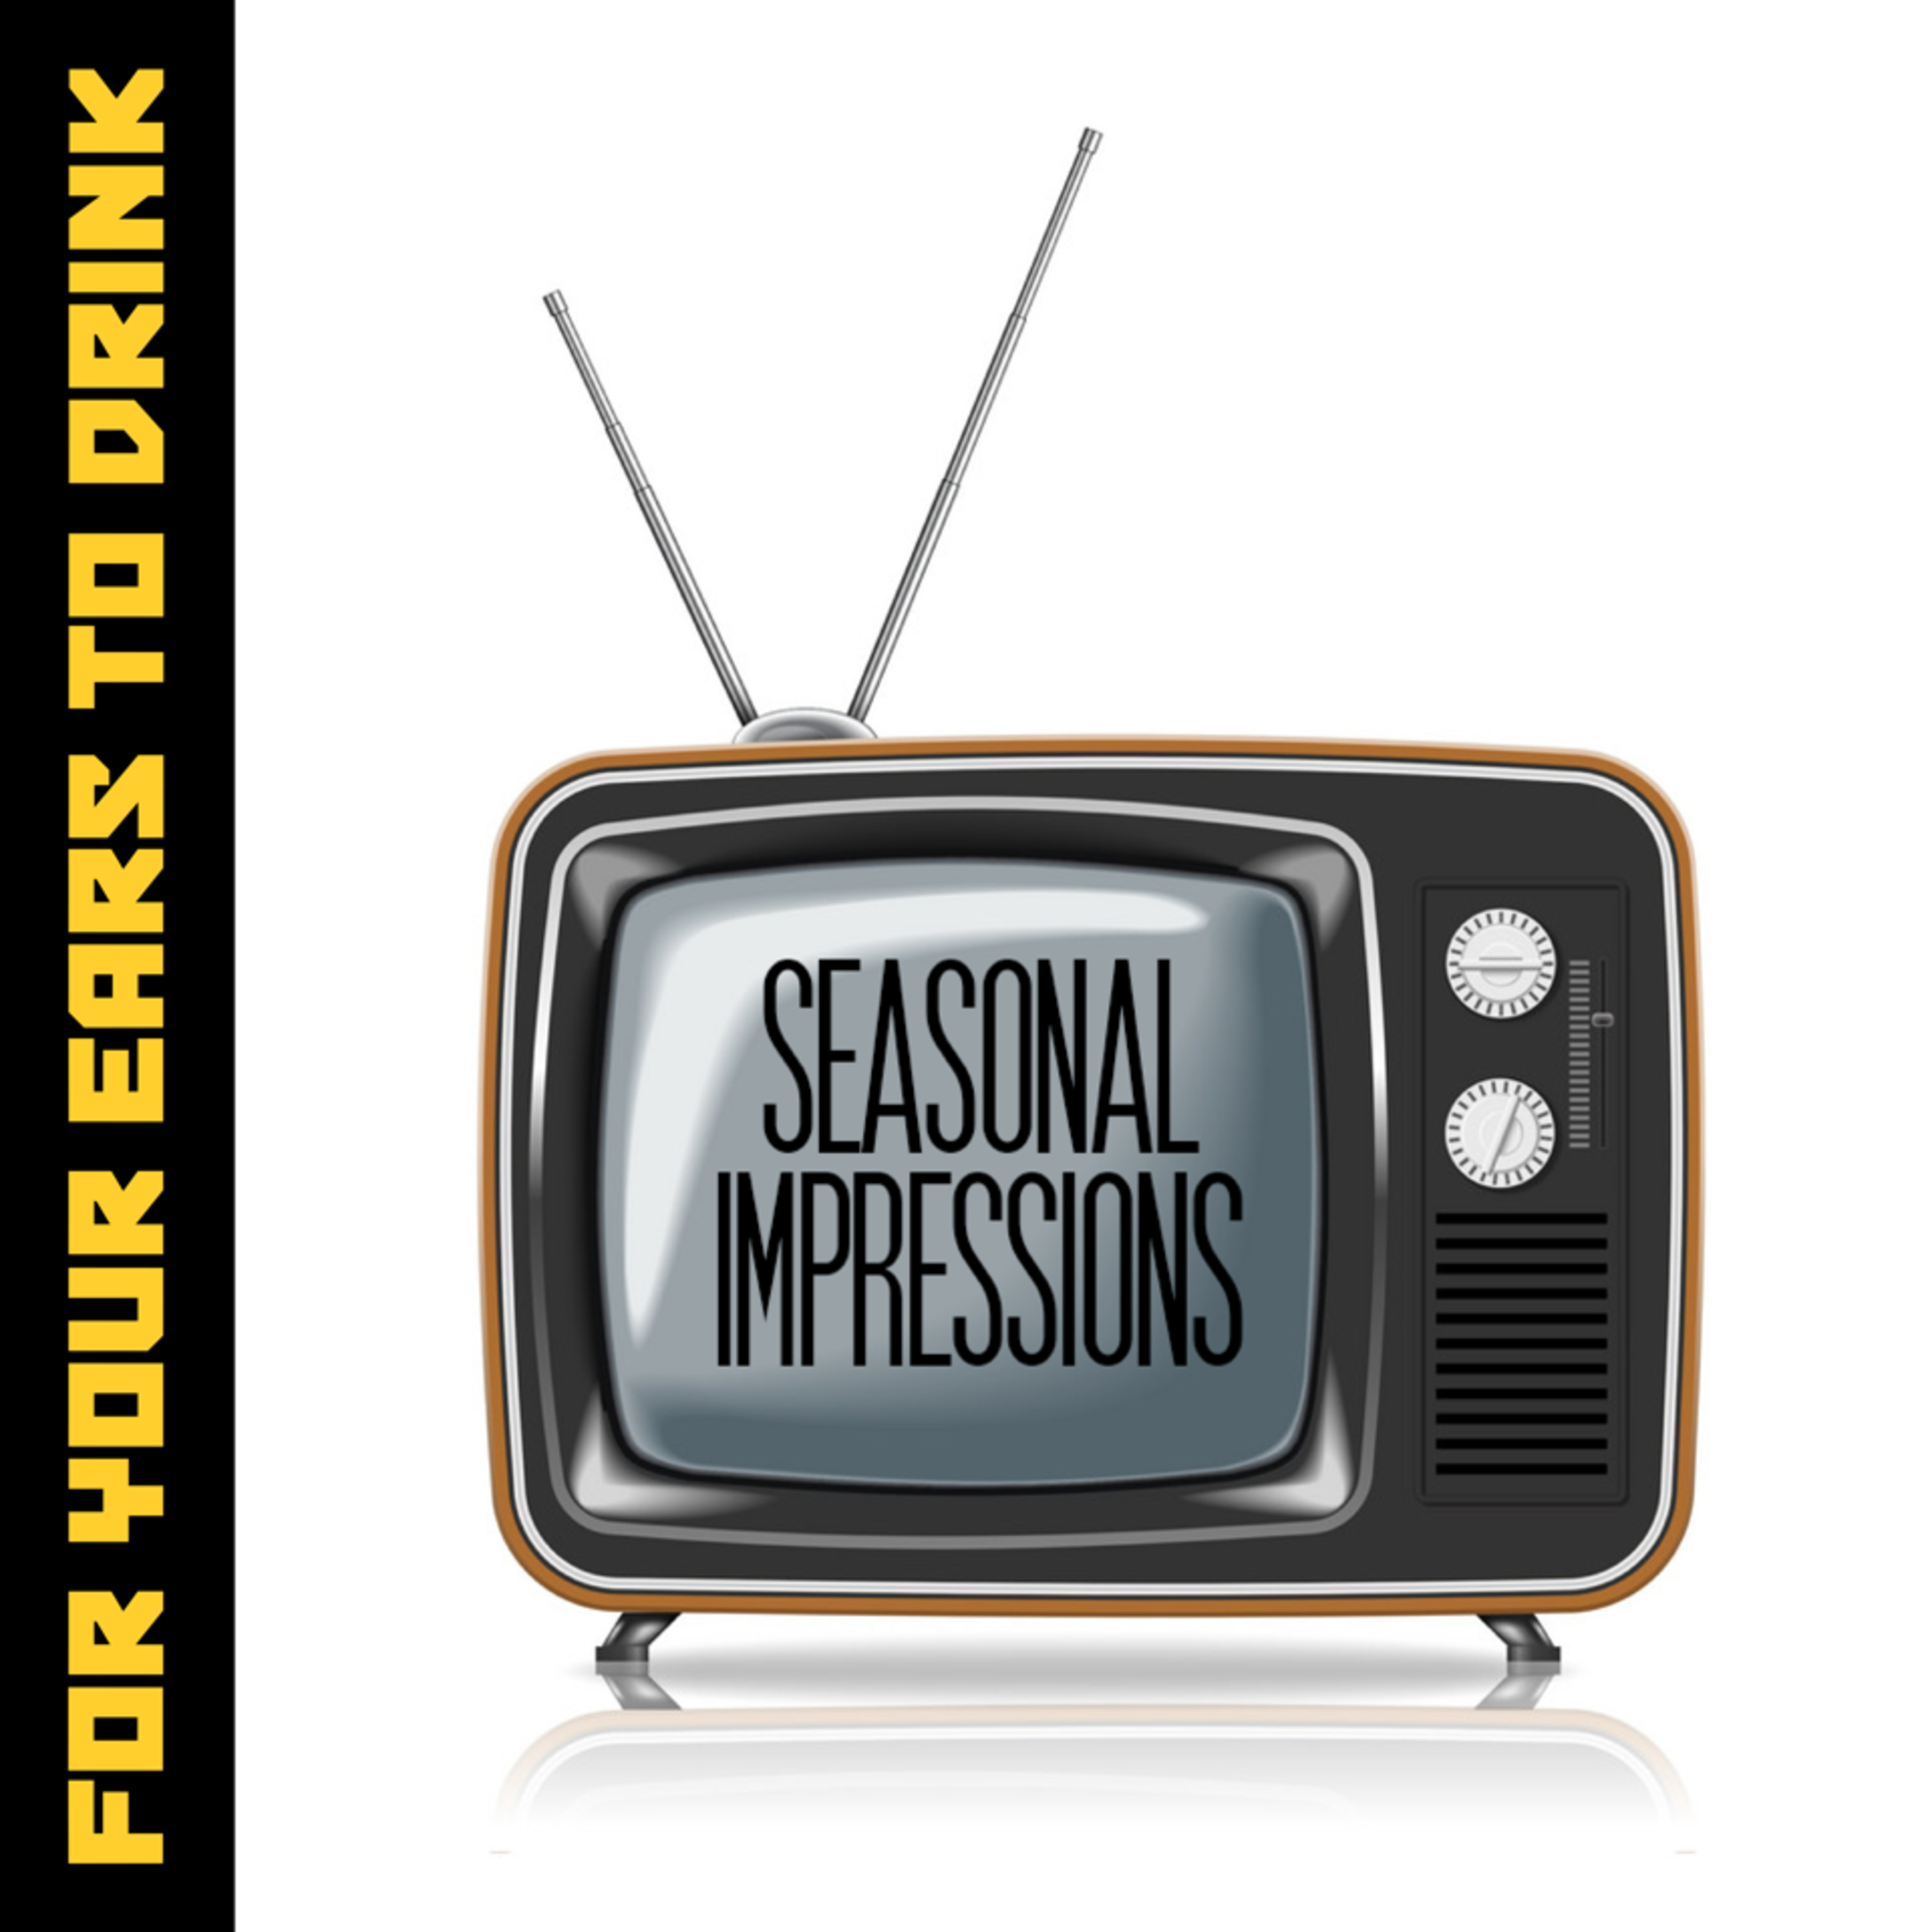 Seasonal Impressions - Episode 15: Game of Thrones Season 8 - Great till the last 30 minutes.